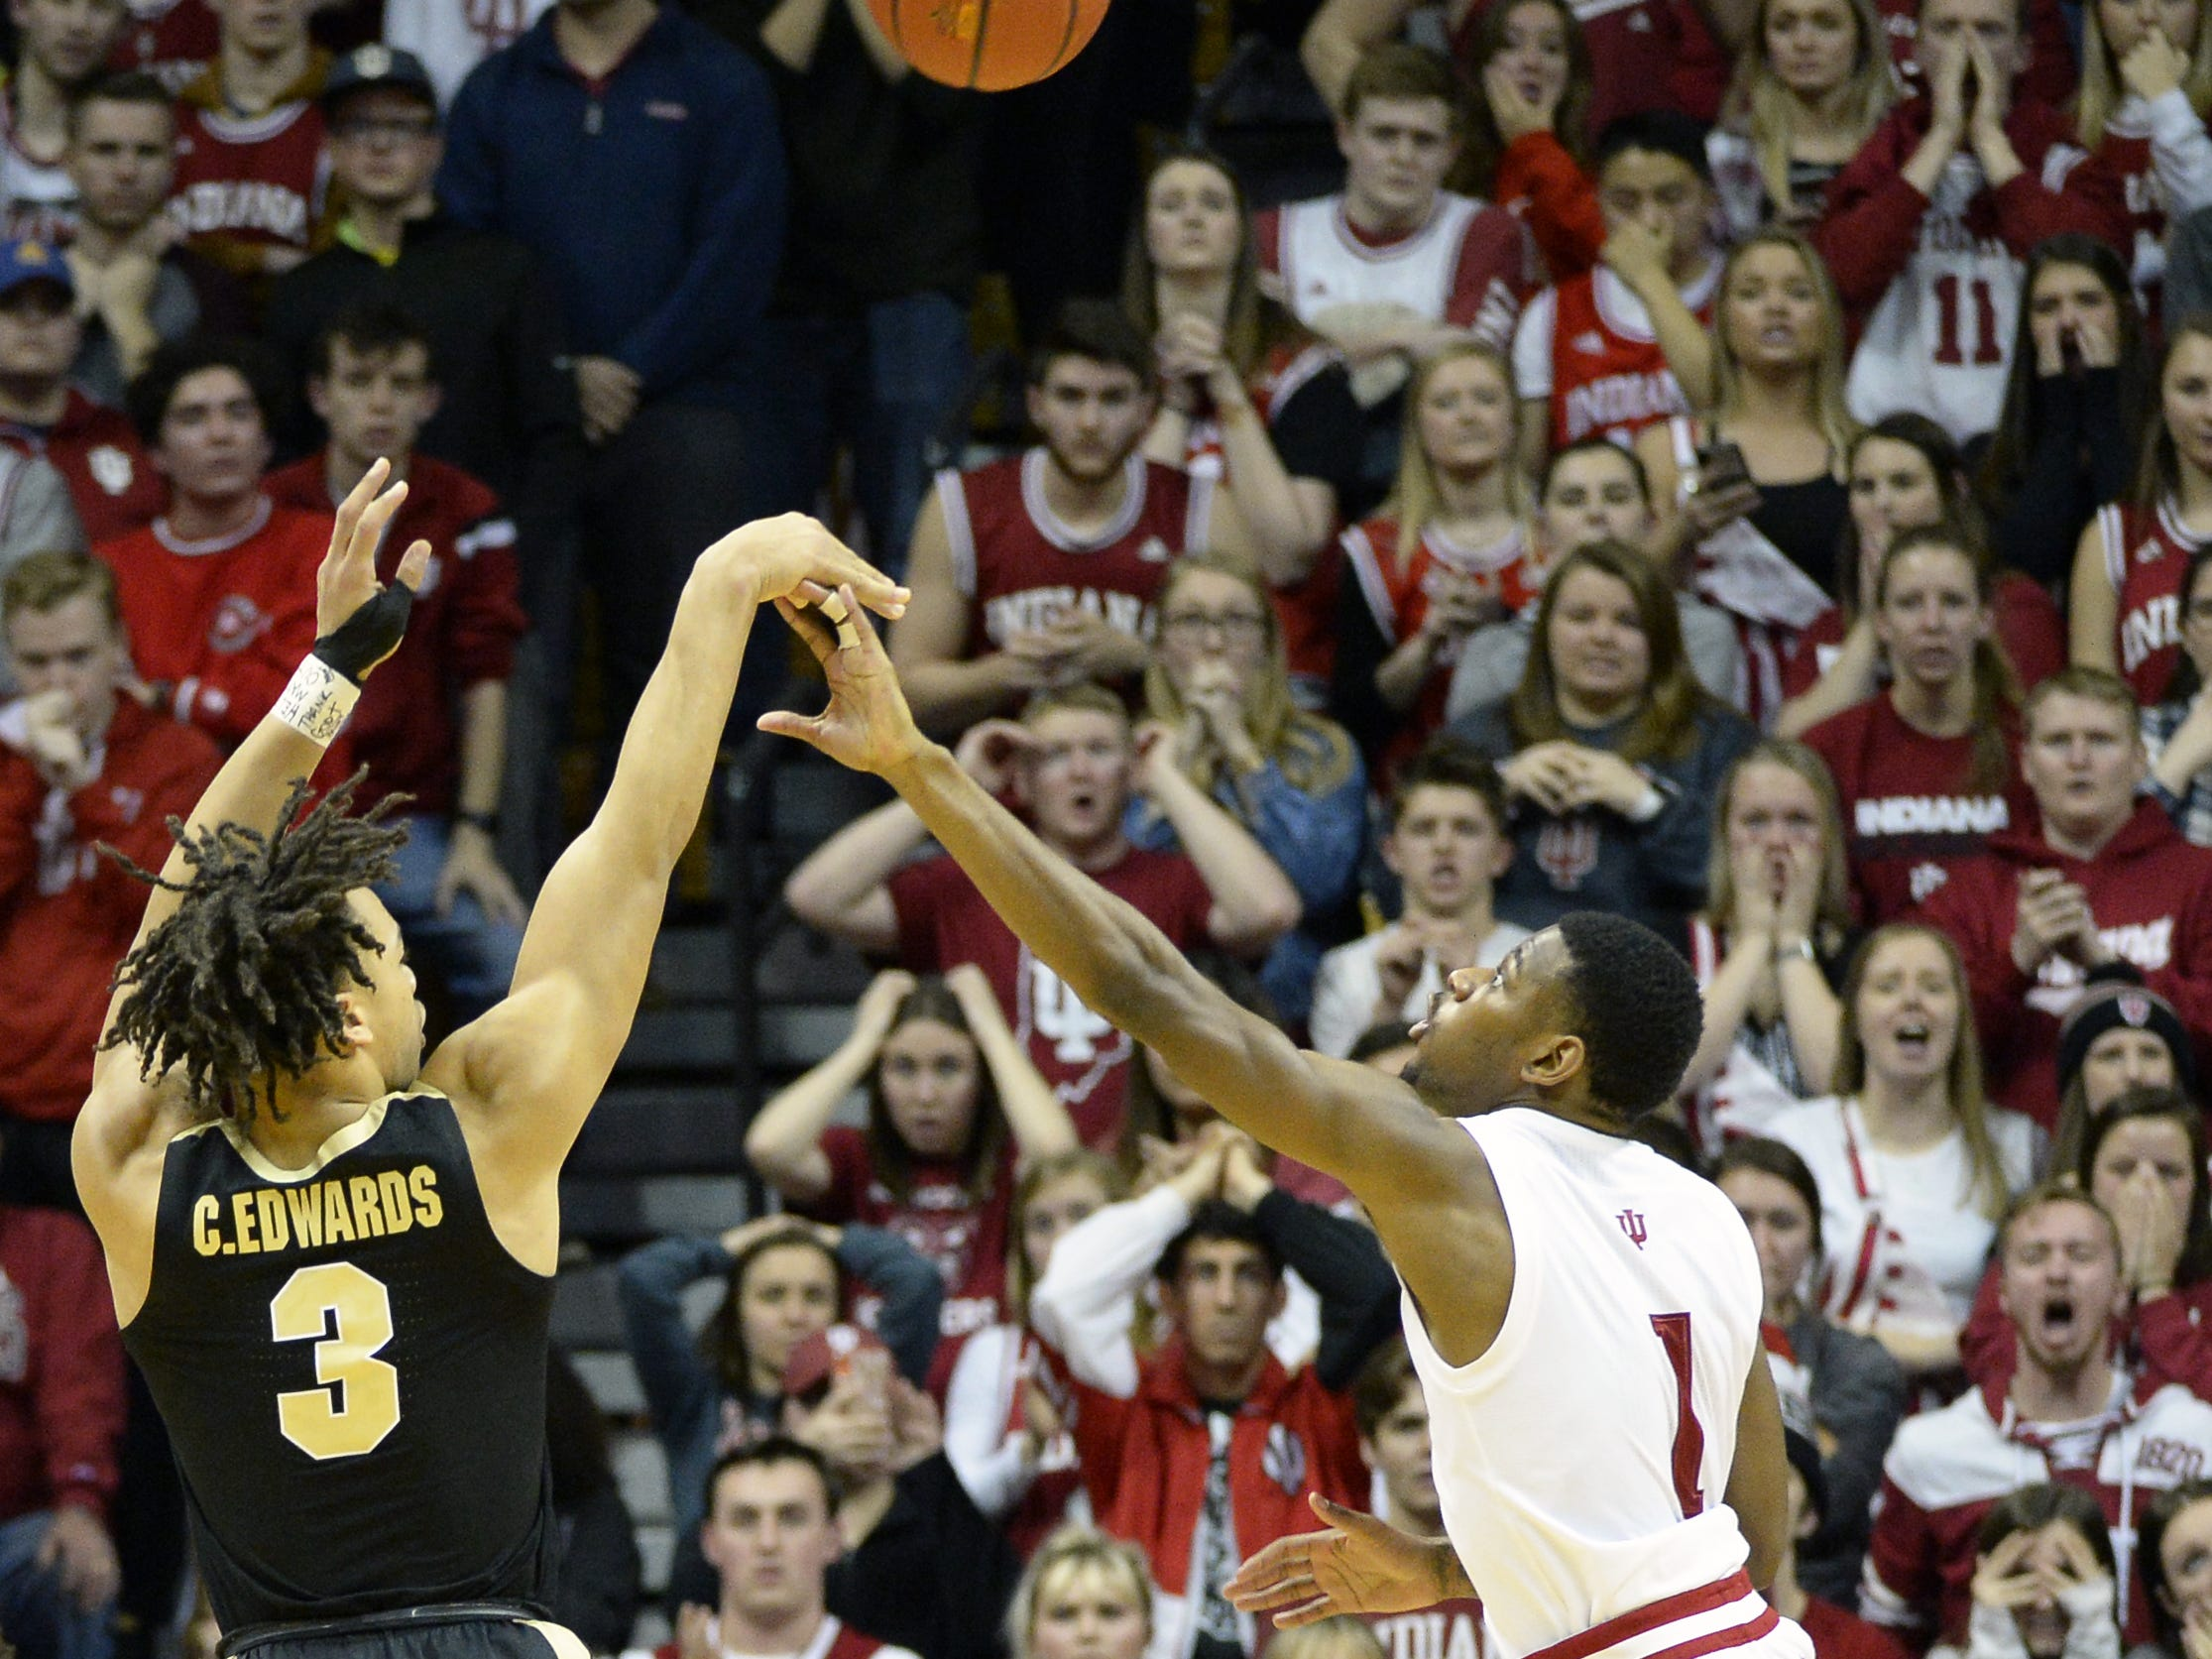 Purdue Boilermakers guard Carsen Edwards (3) attempts a shot during the Indiana-Purdue game at Simon Skjodt Assembly Hall in Bloomington, Ind., on Tuesday, Feb. 19, 2019.